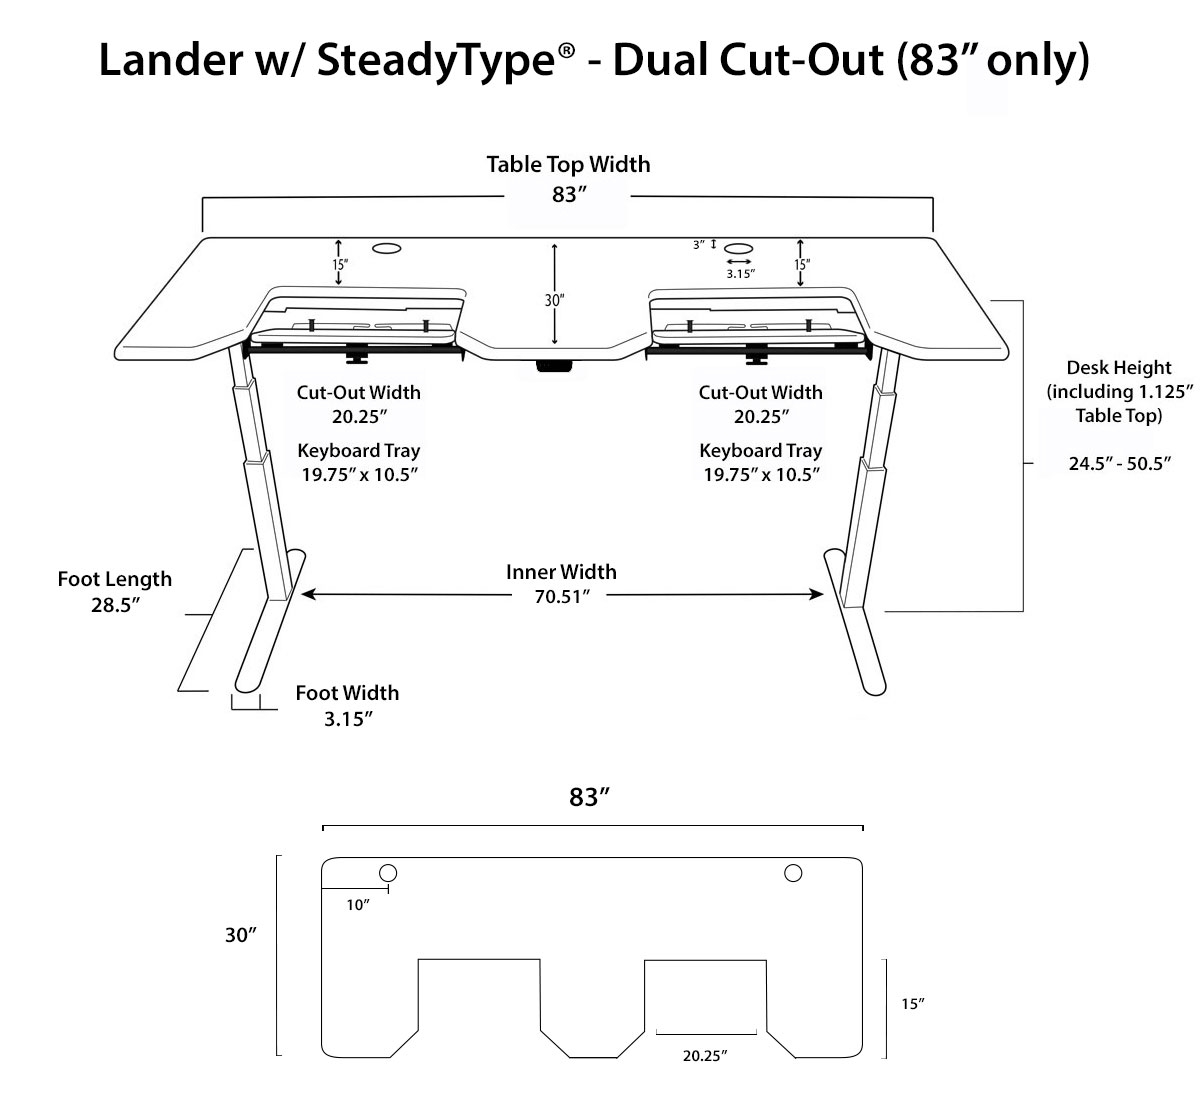 Lander SteadyType Standing Desk - Dual Cut Out Diagrams